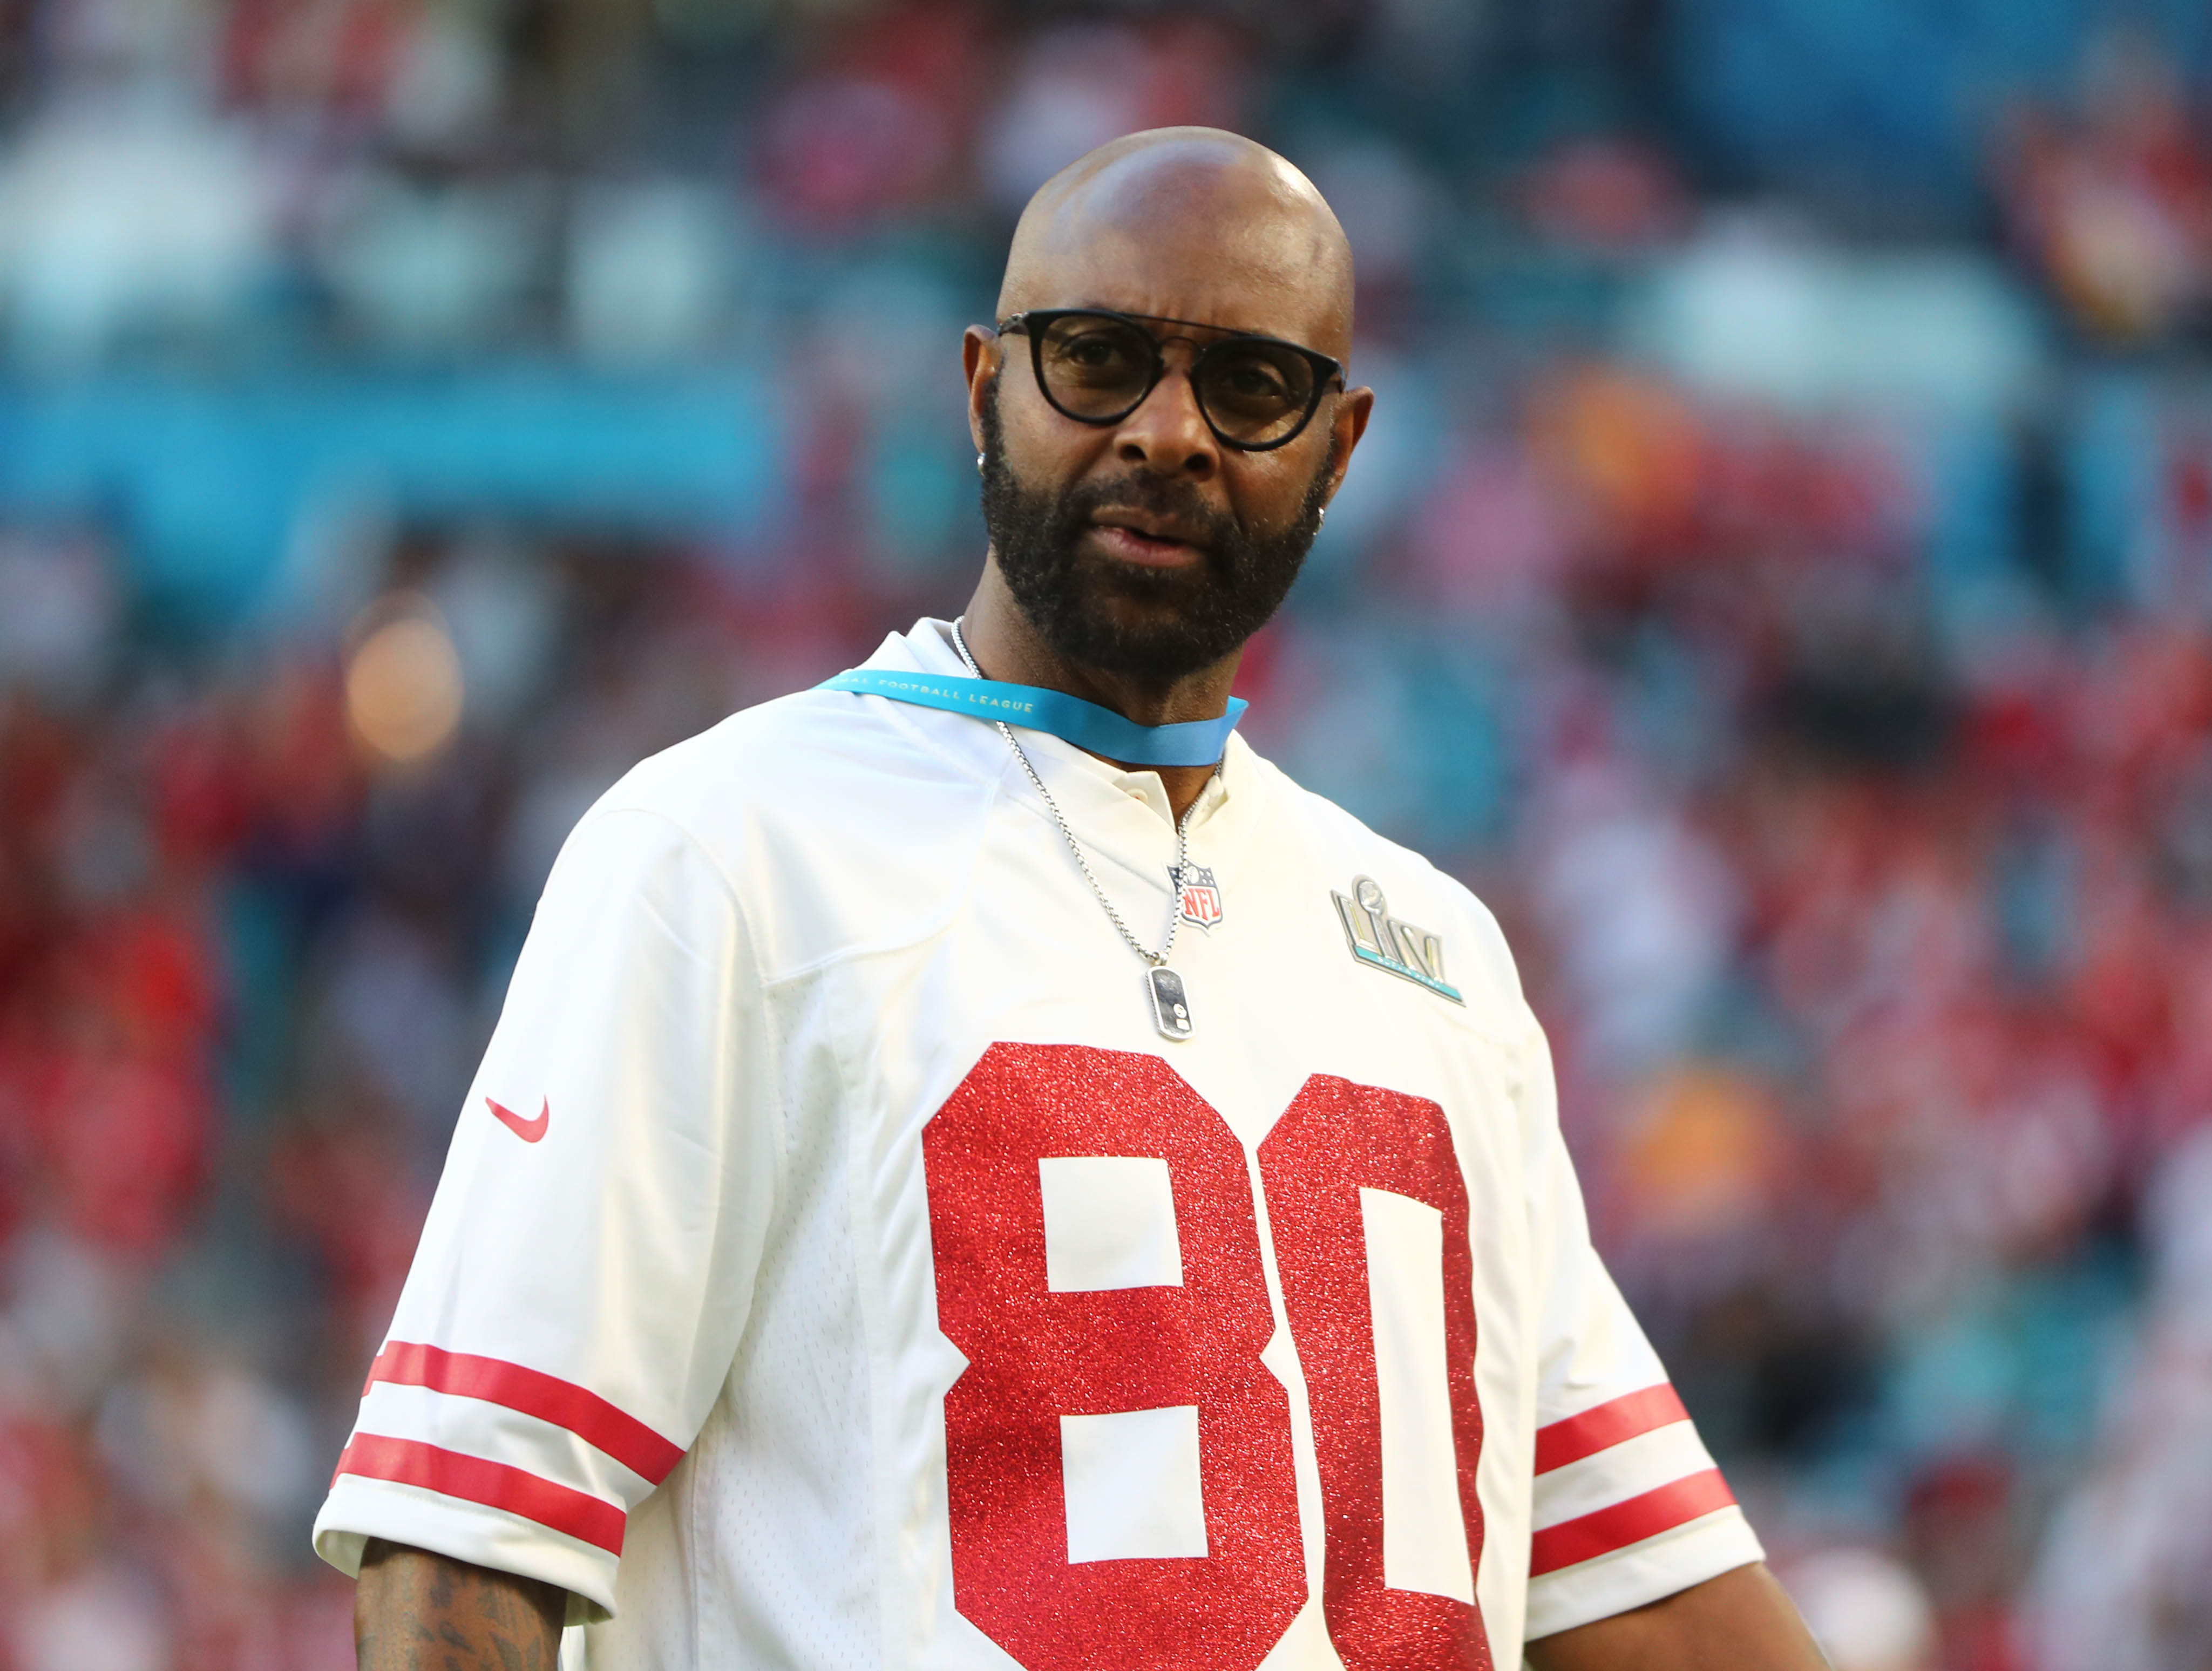 Jerry Rice takes a shot at Randy Moss on social media